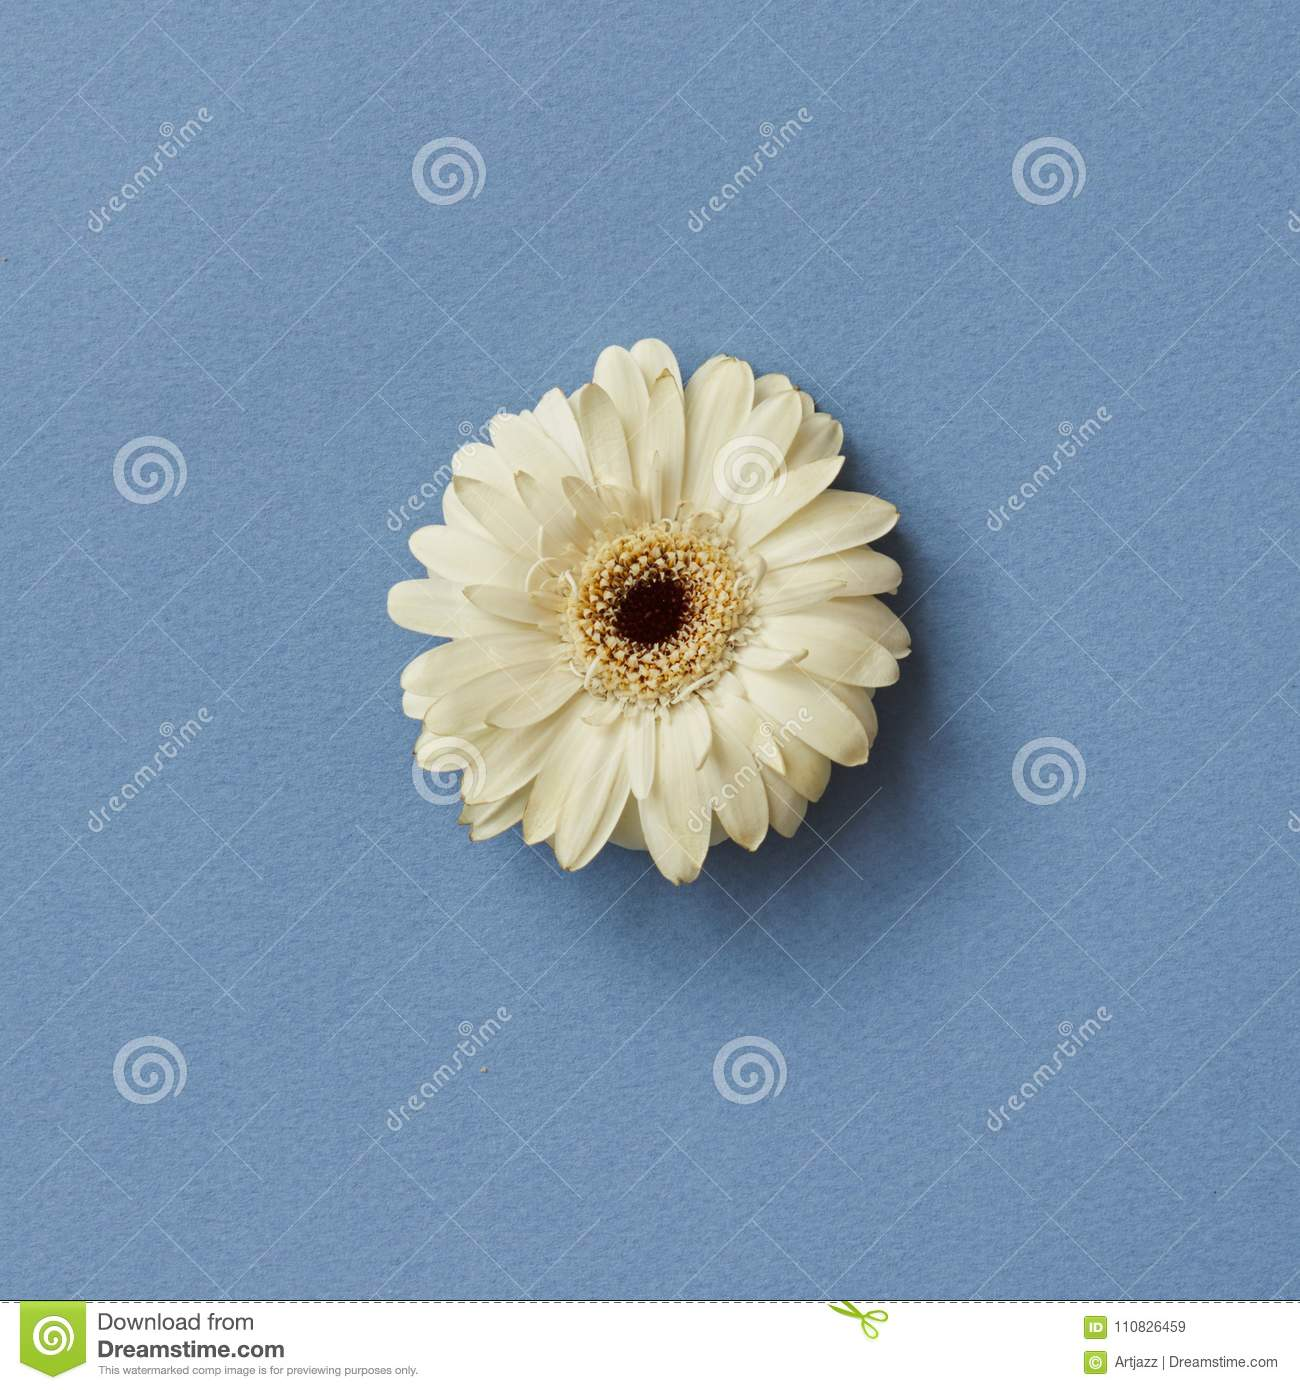 One White Gerbera Flower Isolated On A Blue Background Stock Image